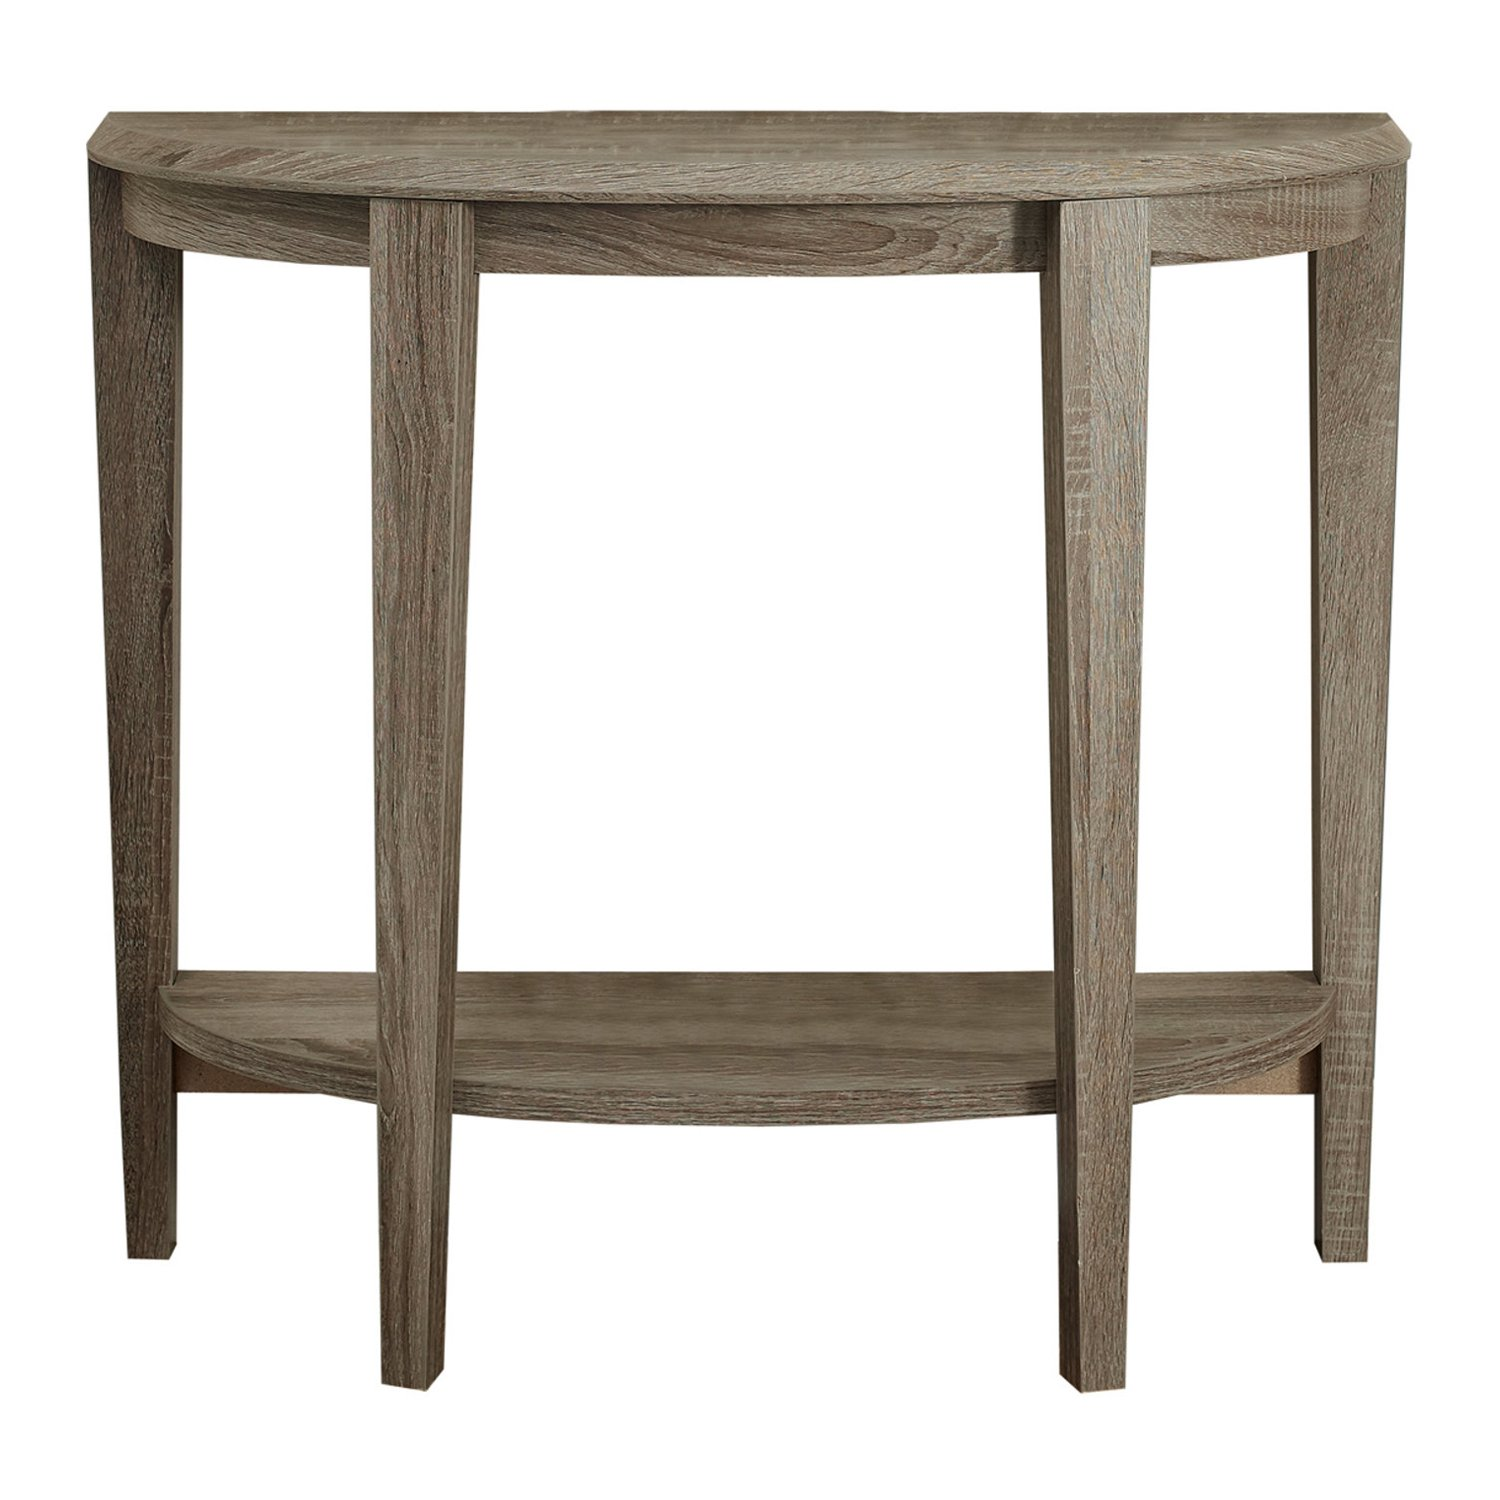 36 Inch Accent Table - 71gekVV6IbL_Best 36 Inch Accent Table - 71gekVV6IbL  HD_65363.jpg